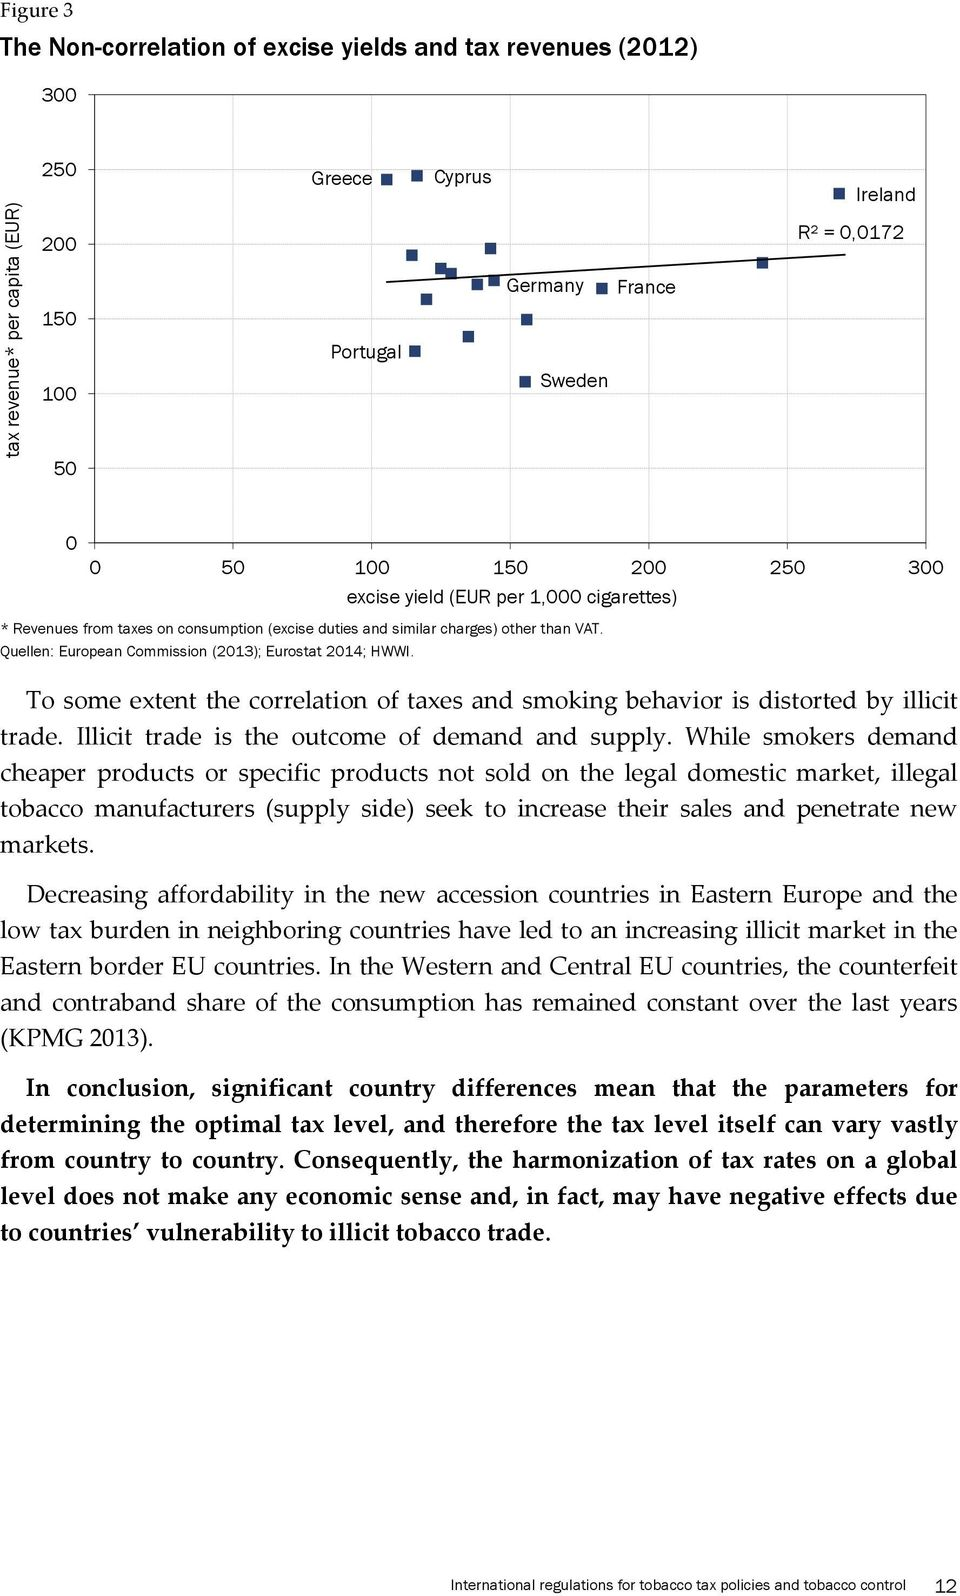 Quellen: European Commission (2013); Eurostat 2014; HWWI. To some extent the correlation of taxes and smoking behavior is distorted by illicit trade. Illicit trade is the outcome of demand and supply.